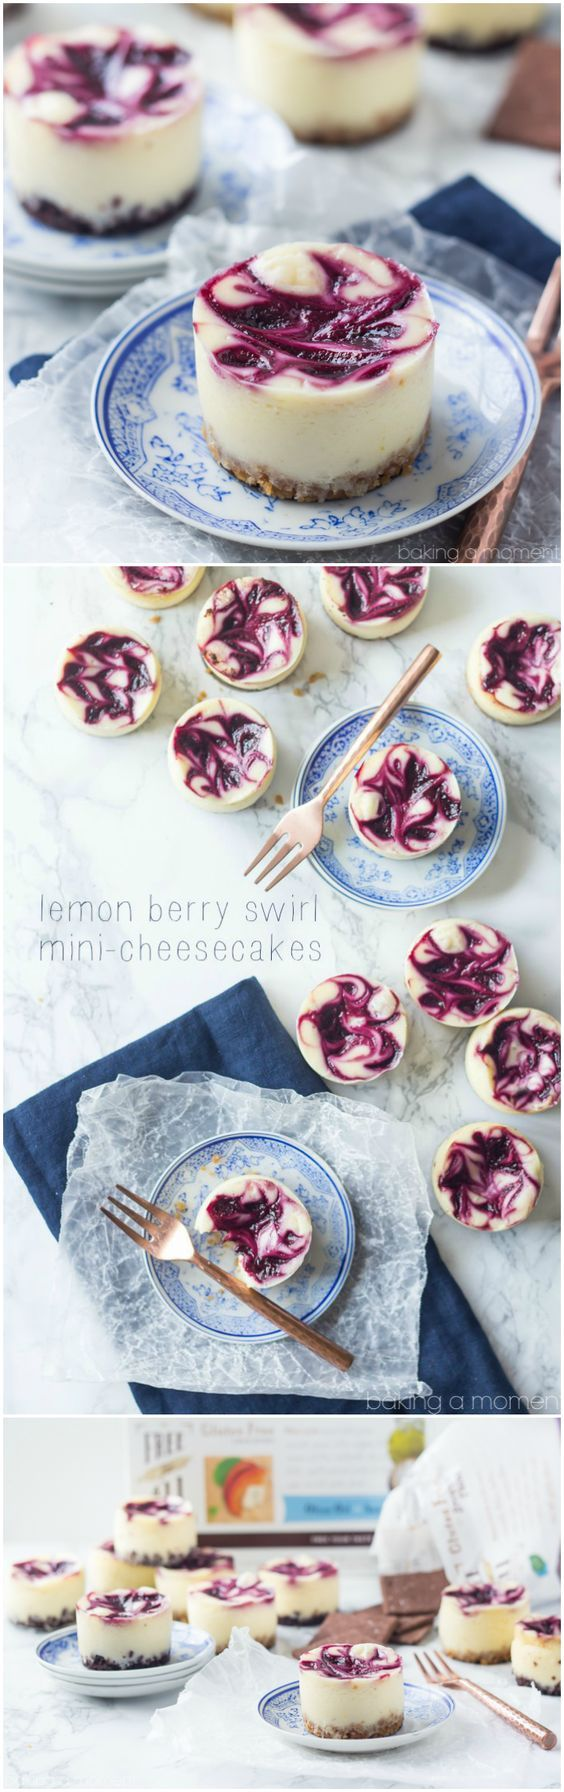 Lemon Berry Swirl Mini-Cheesecakes! So cute, and completely gluten-free :)